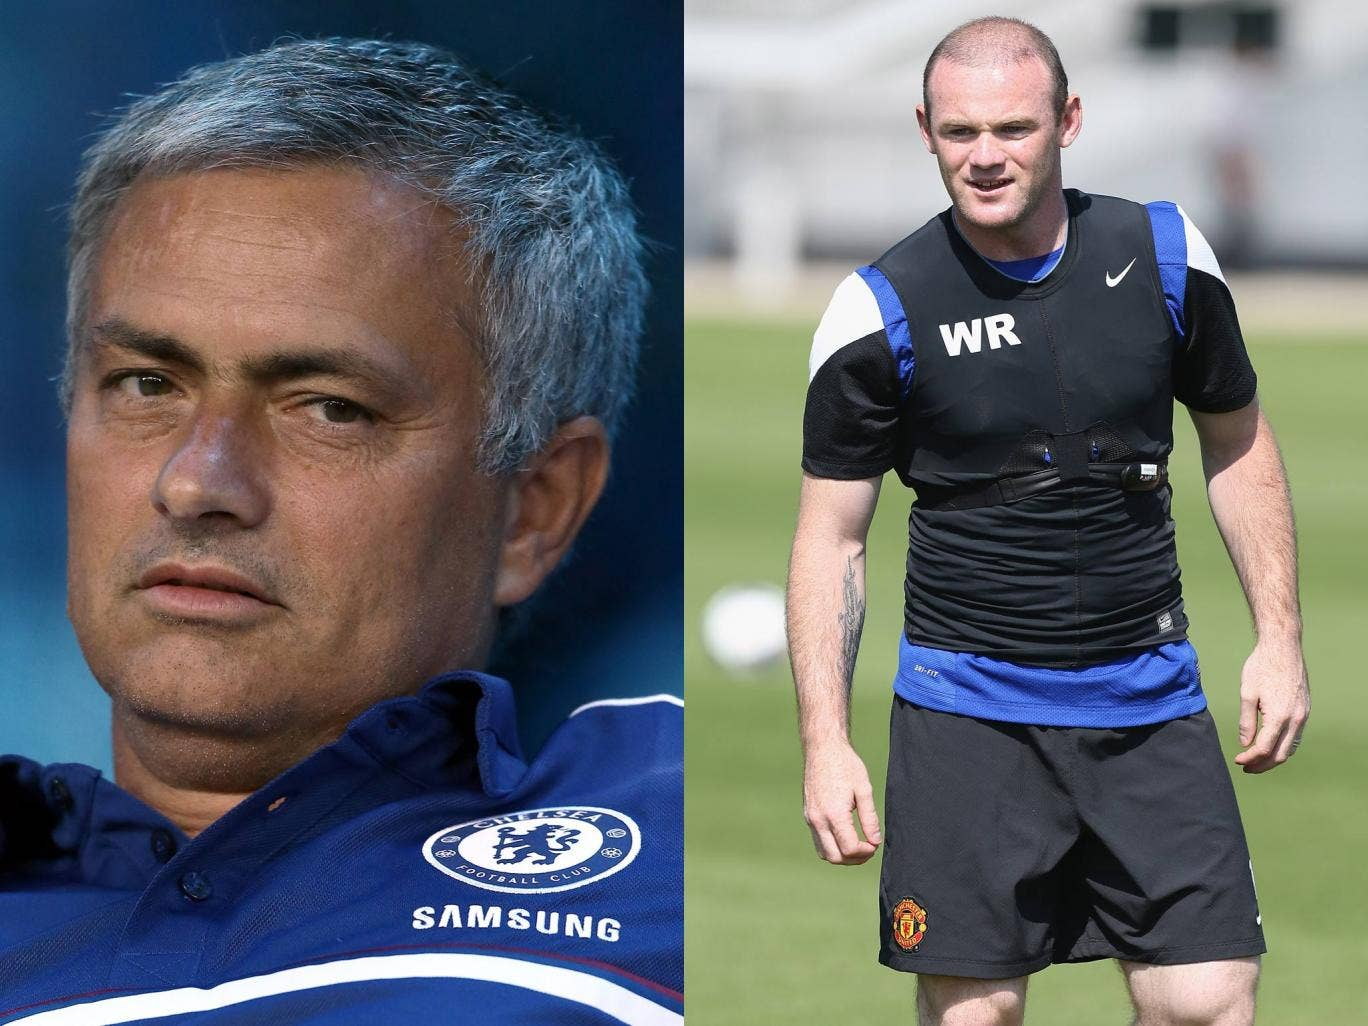 Jose Mourinho and Wayne Rooney